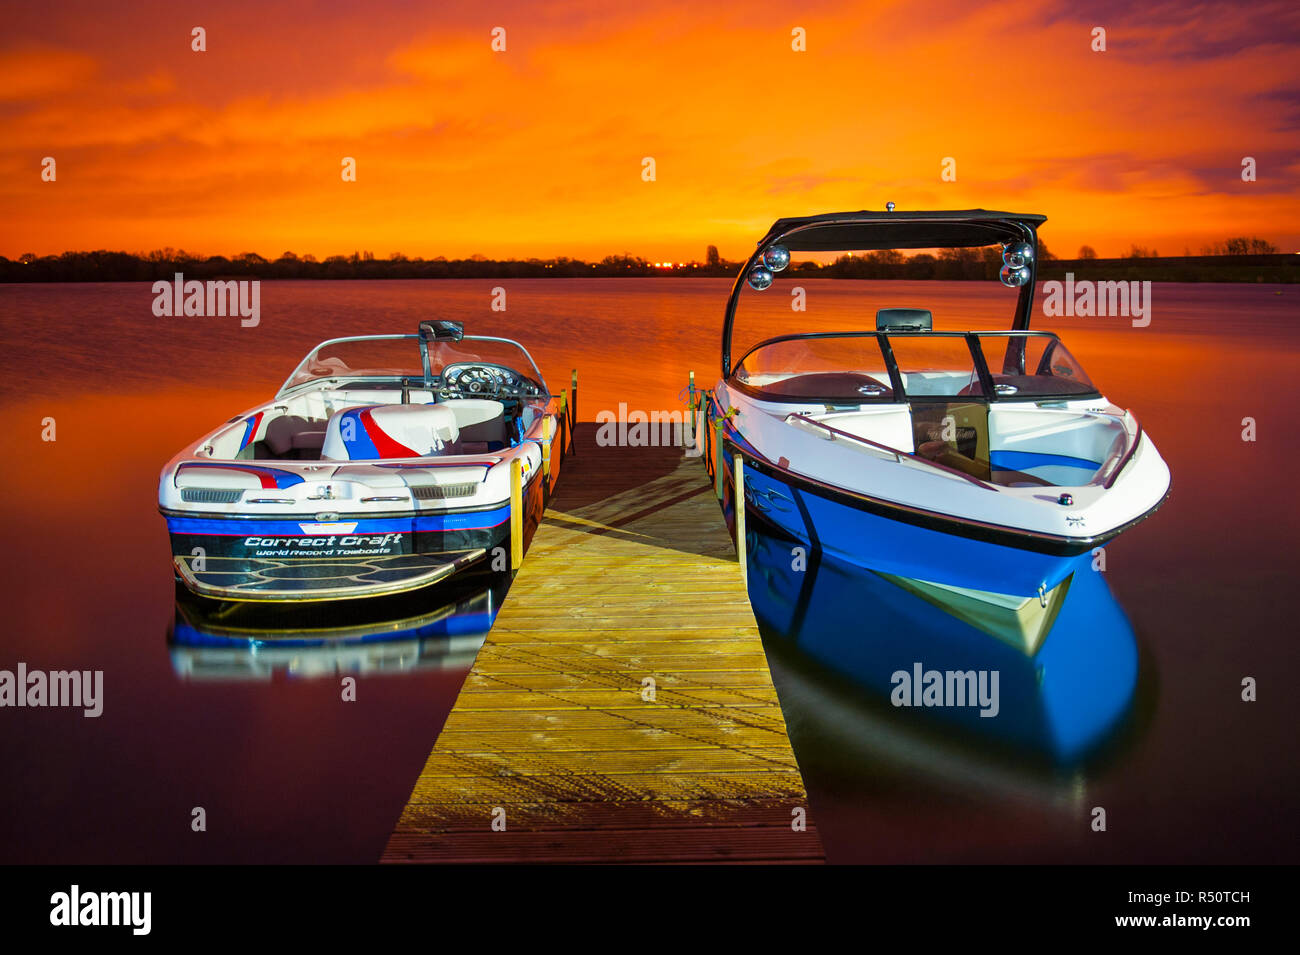 Wakeboarding Boats at Sunset - Stock Image